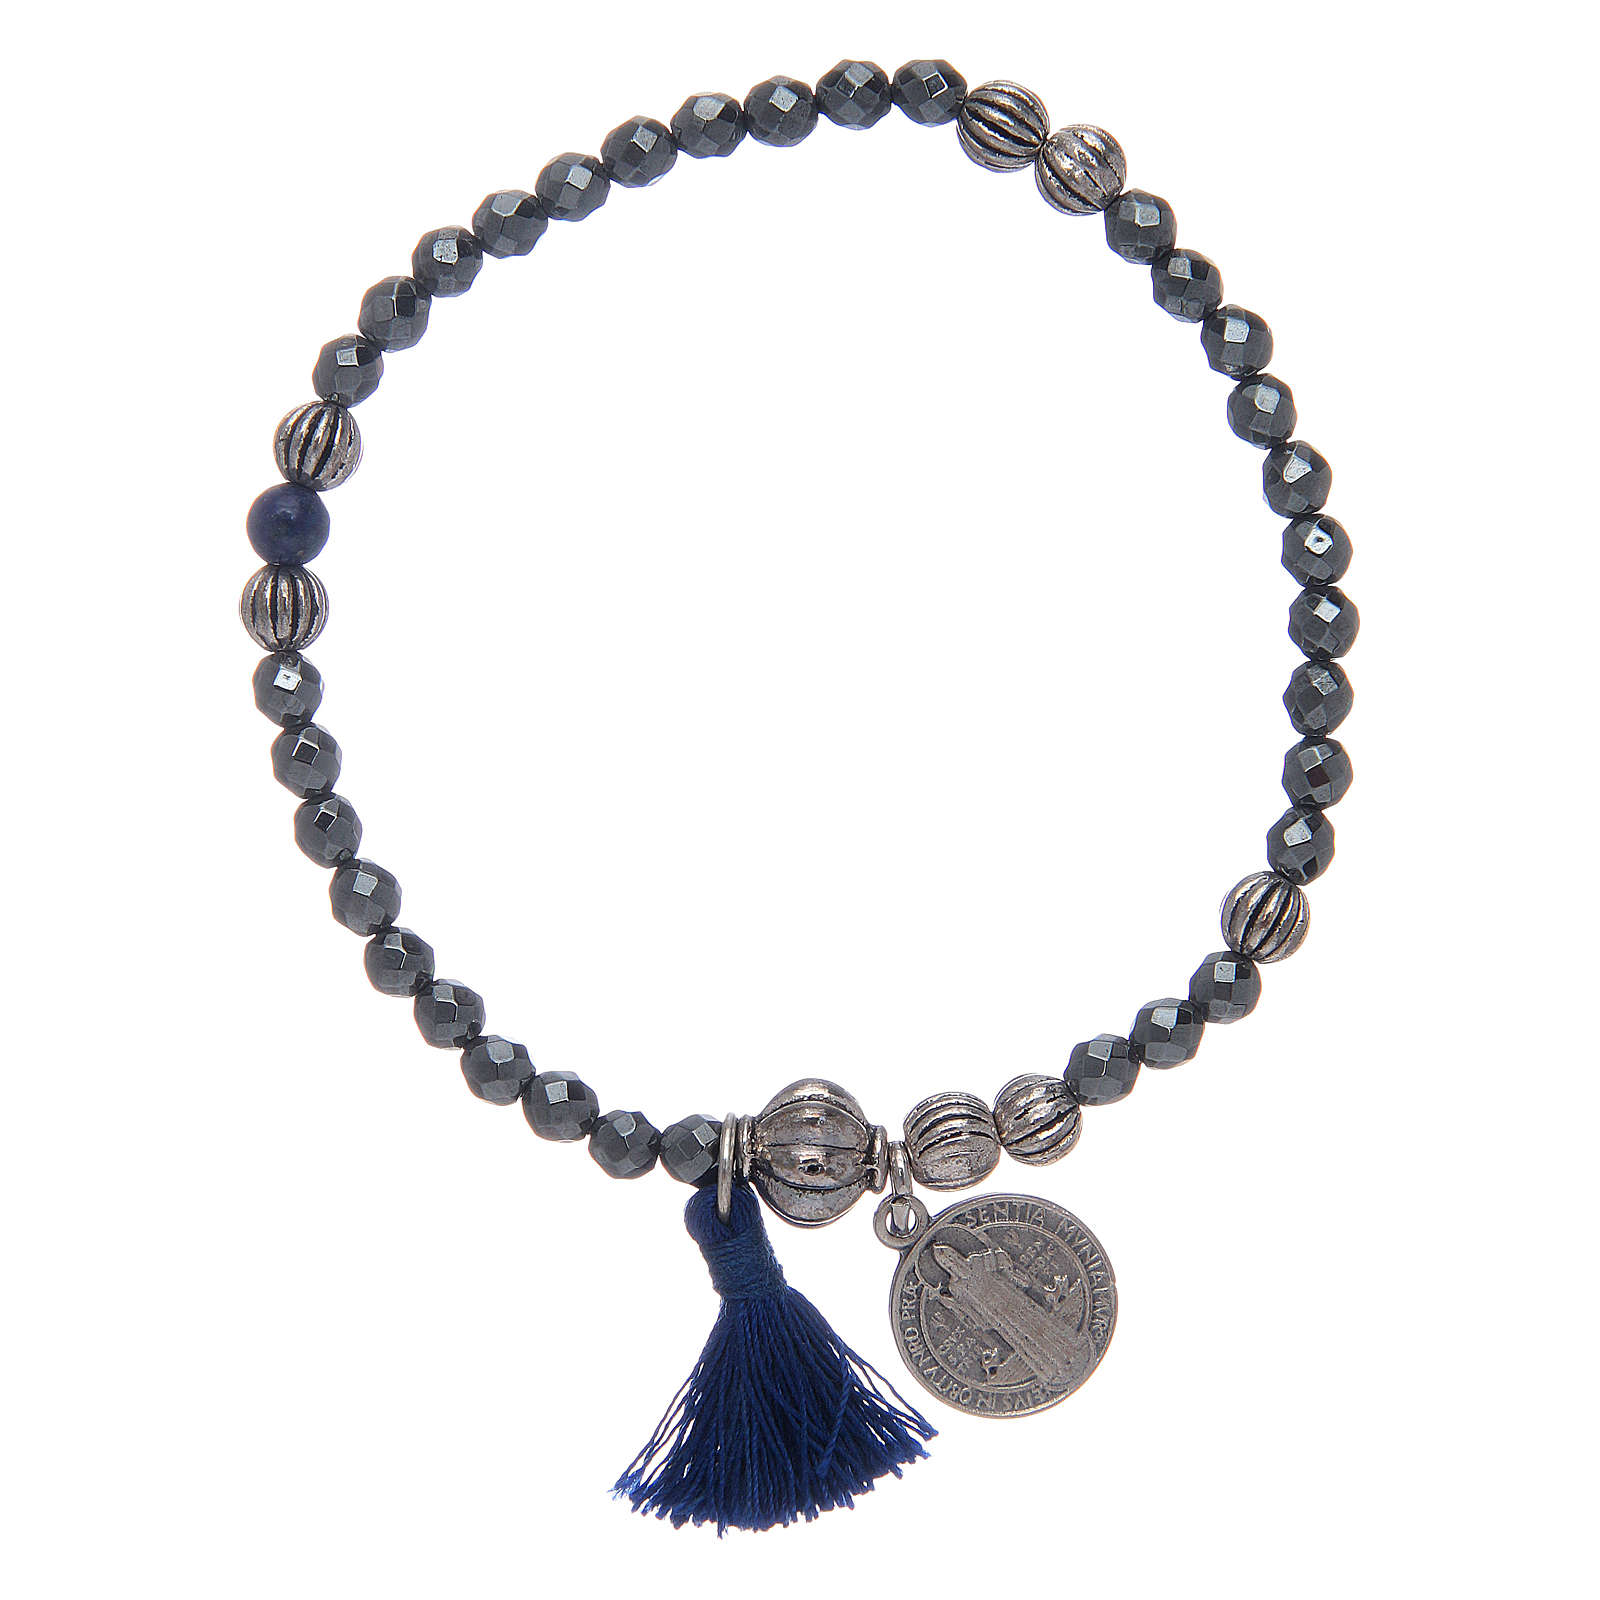 Bracelet with multifaceted hematite grains and Saint Benedict medal 4